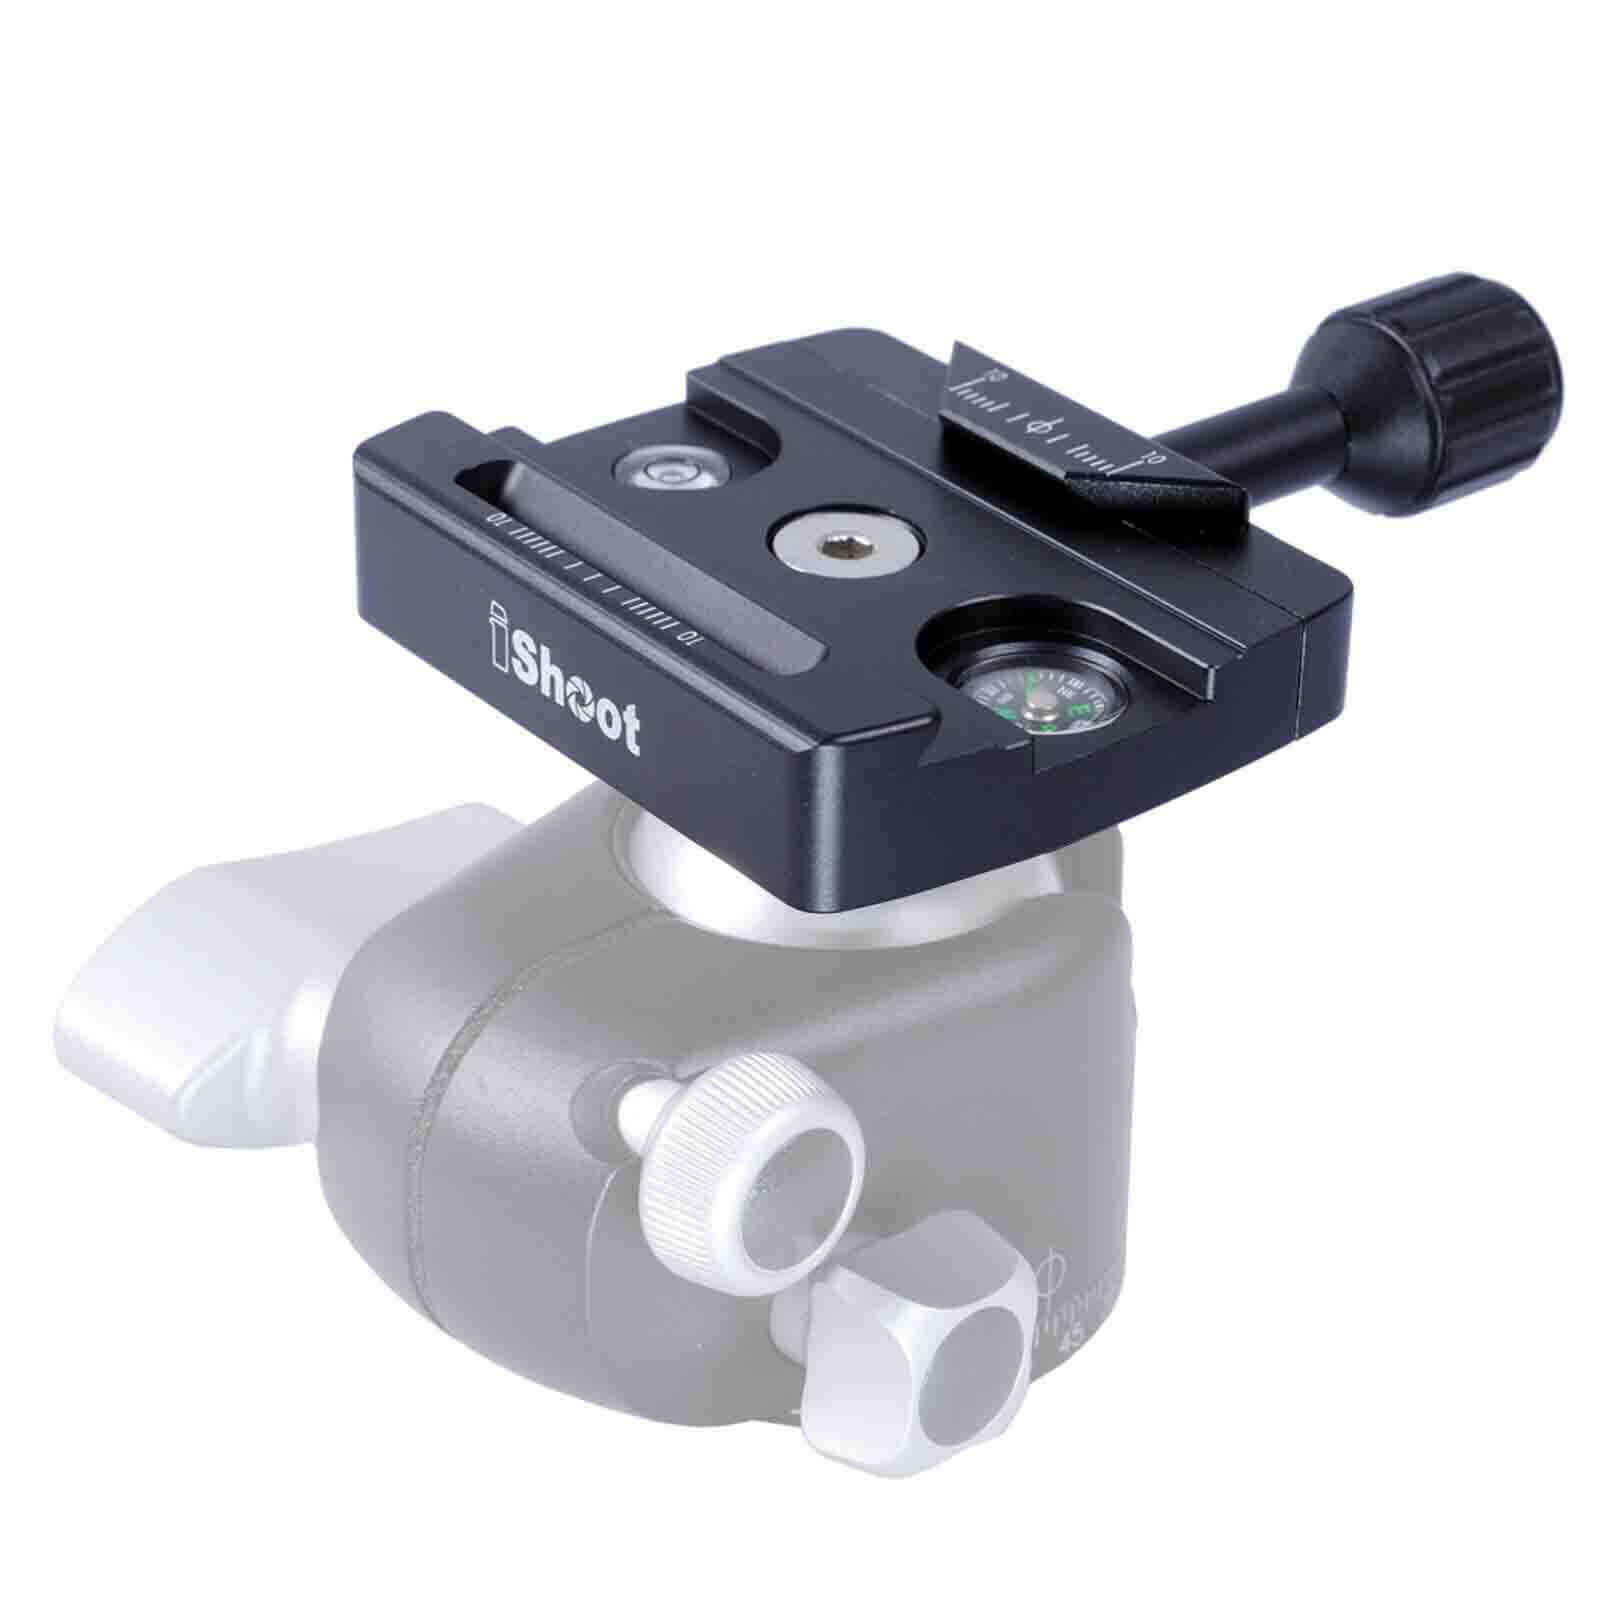 Clamp for Manfrotto 496 Tripod Ball Head 200PL 410PL Camera Quick Release Plate